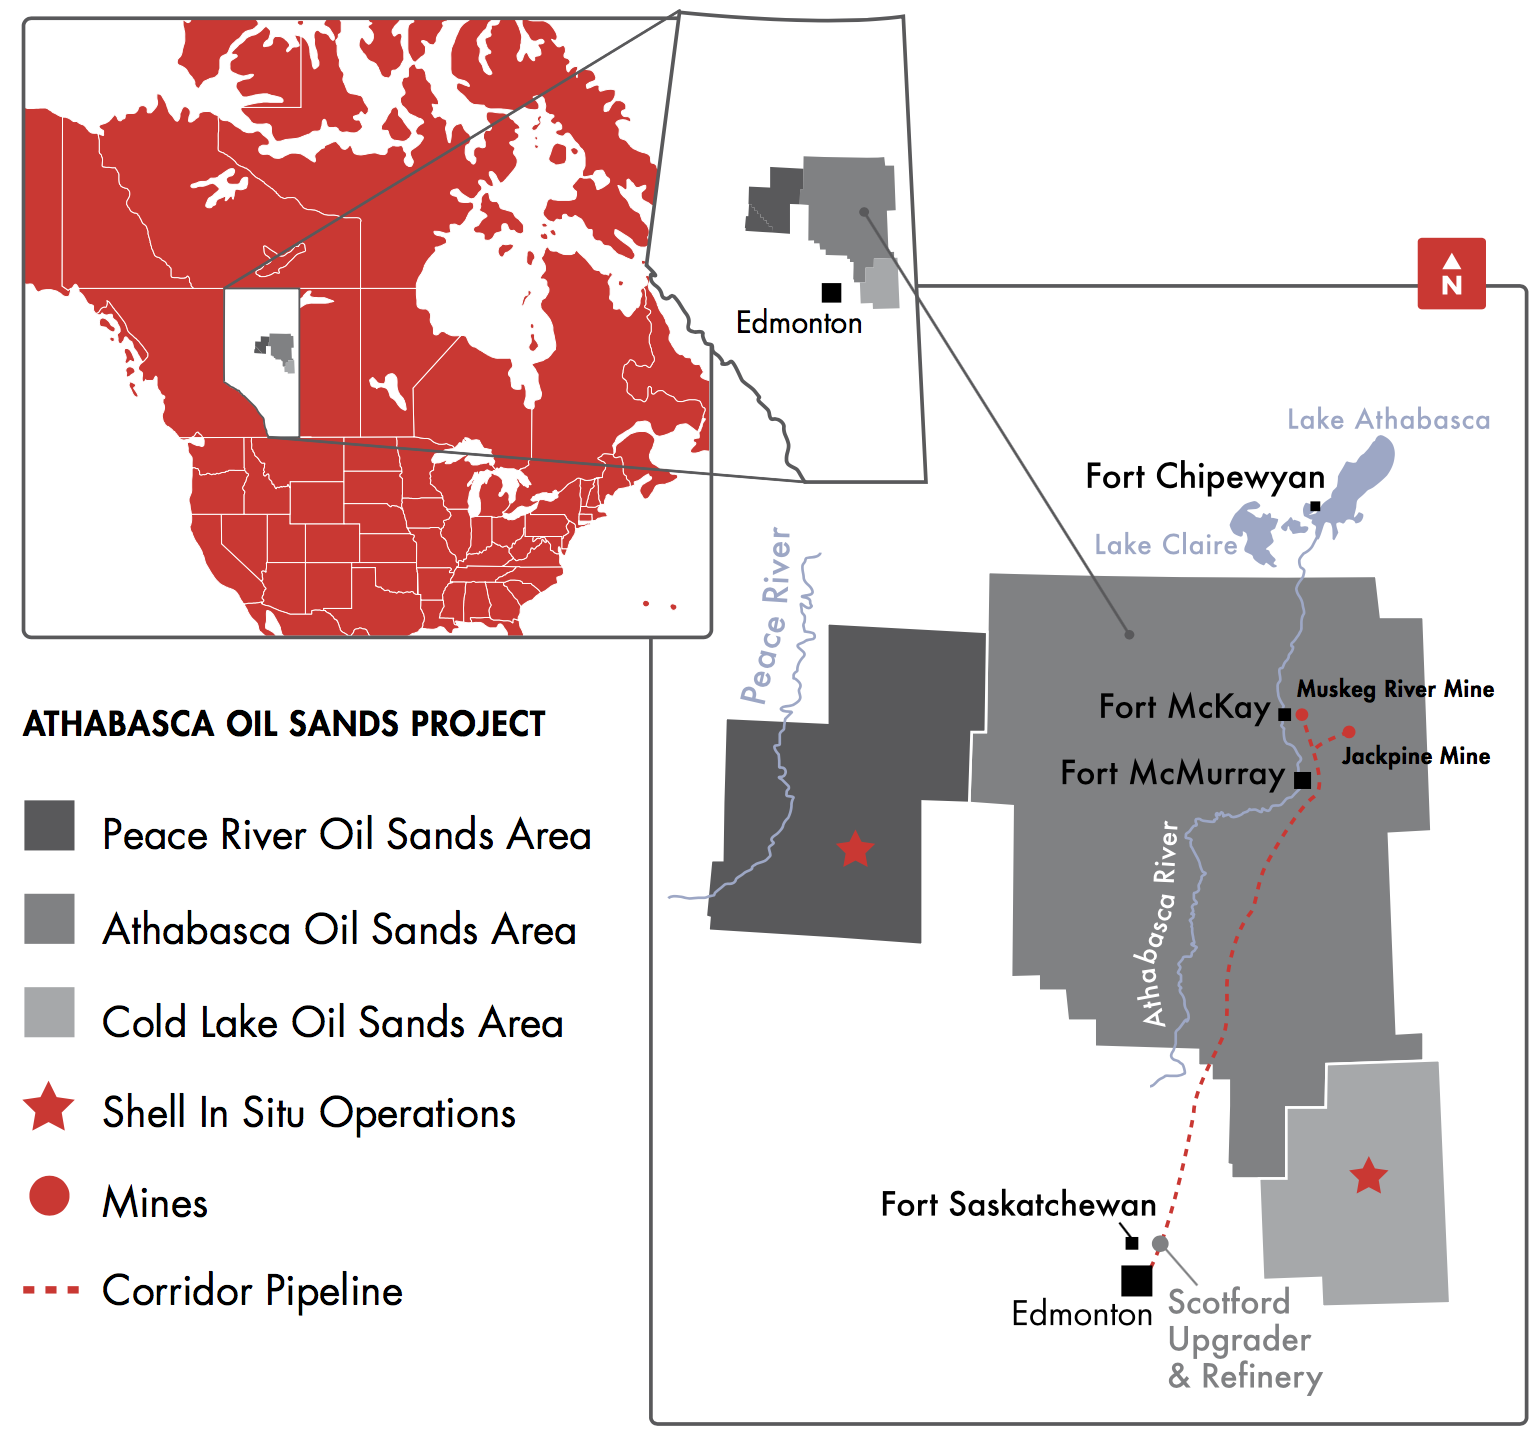 ATHABASCA OIL SANDS PROJECT (COURTESY SHELL CANADA)